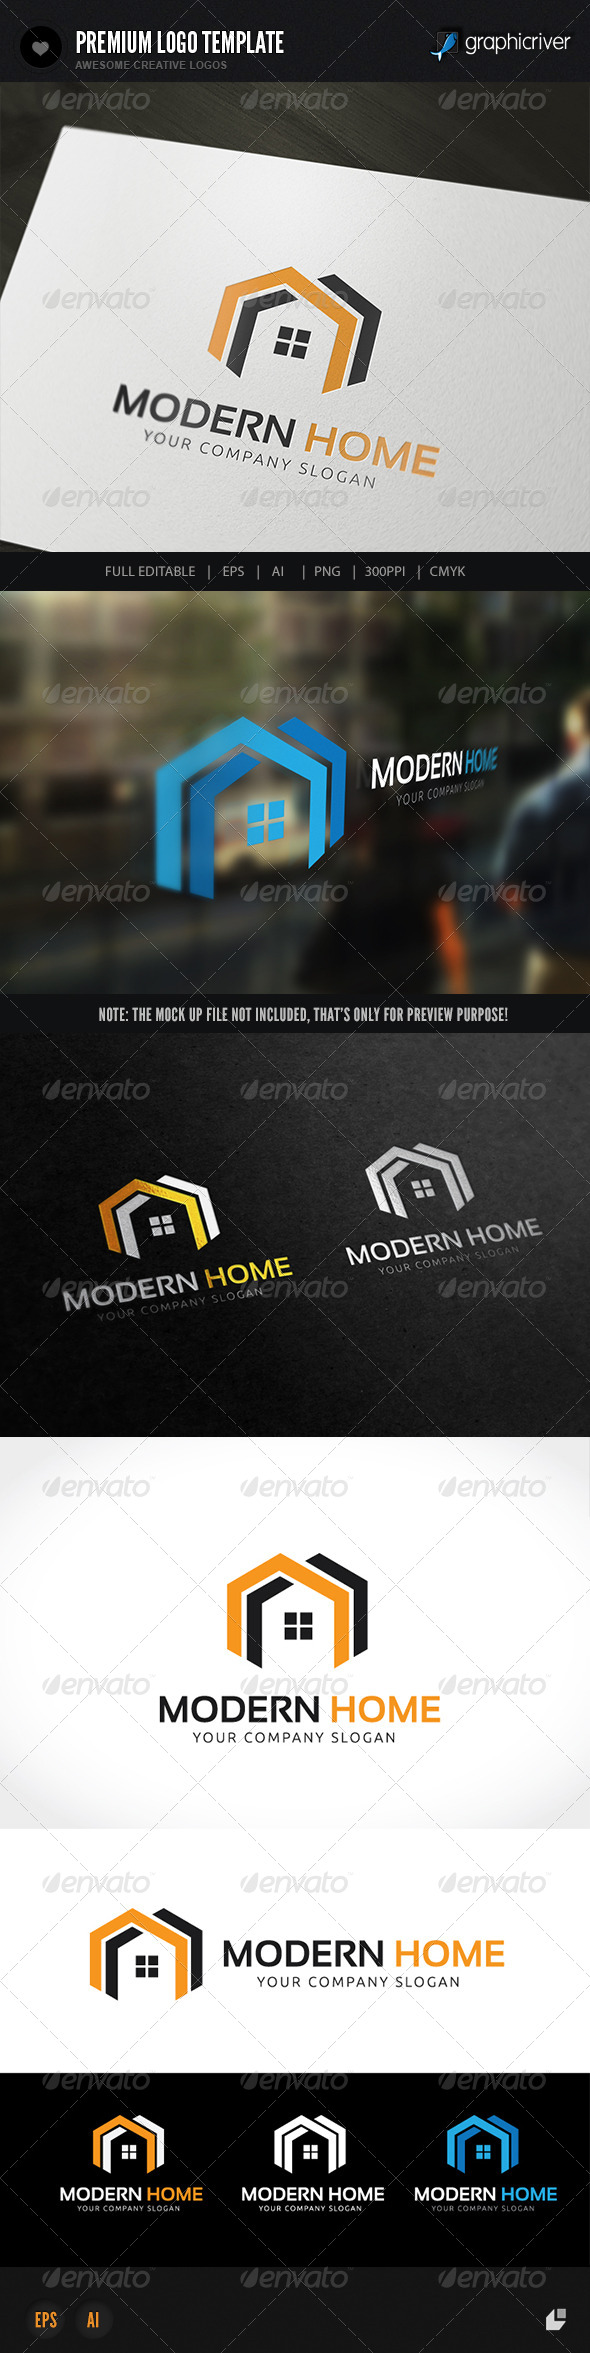 GraphicRiver Modern Home 8568592